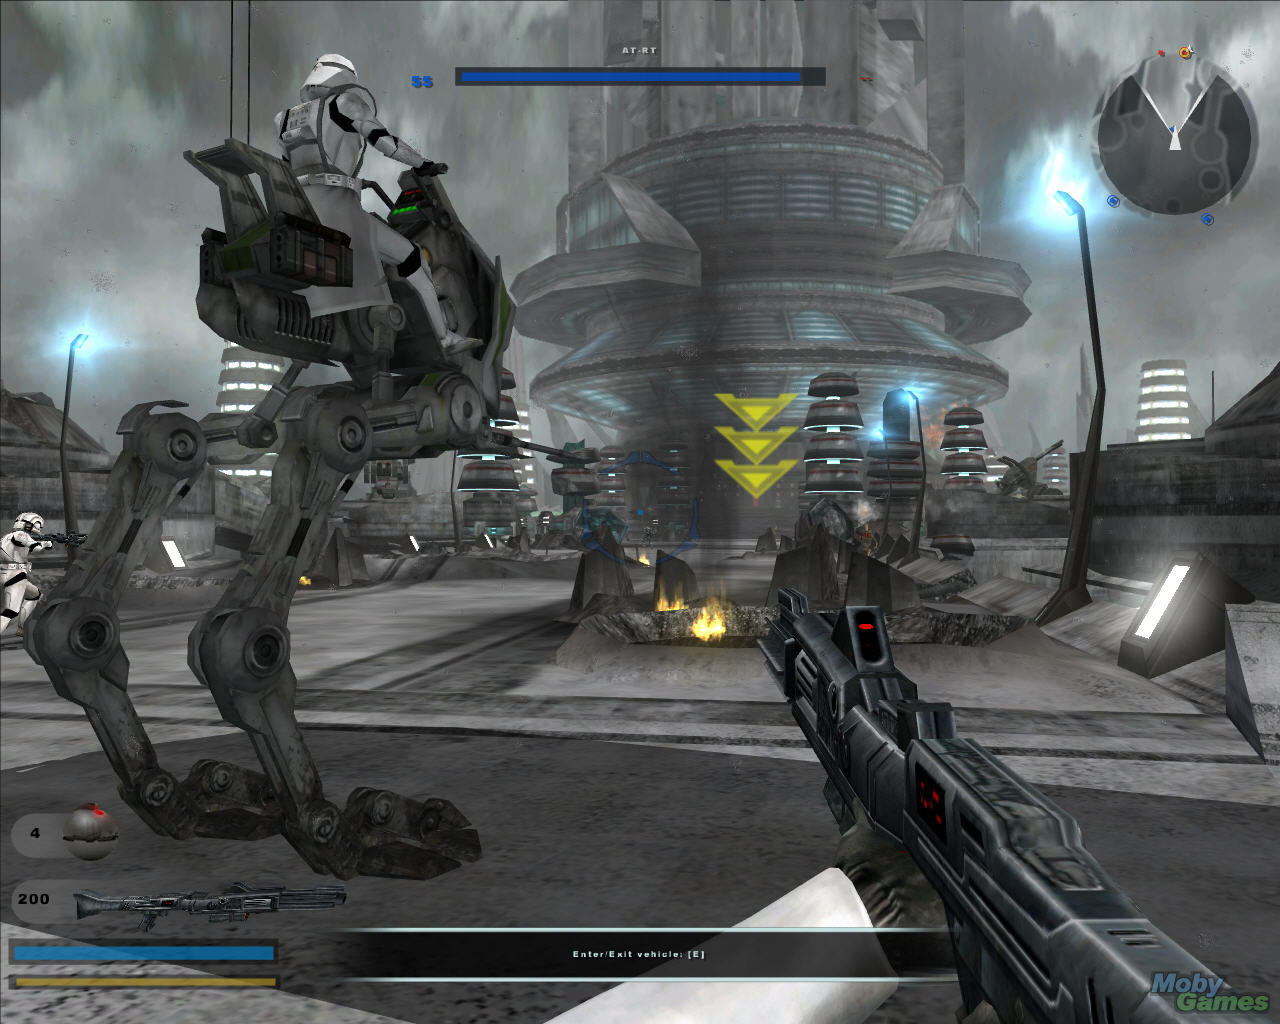 star wars battlefront 2 download free download free full version pc games